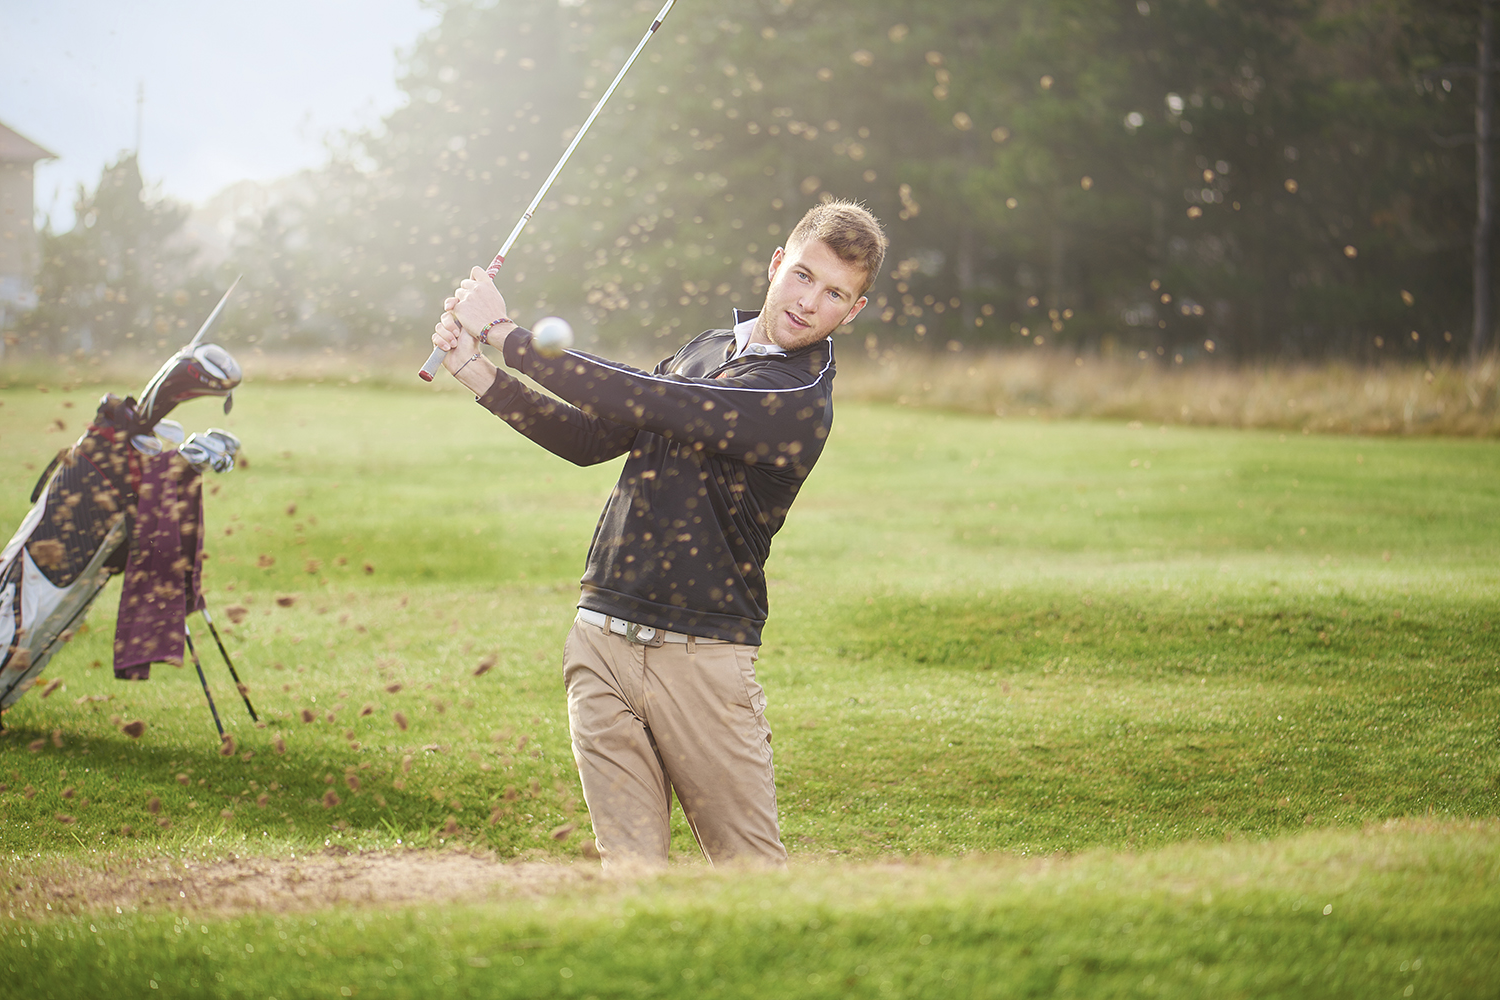 A student plays a shot on a golf course.